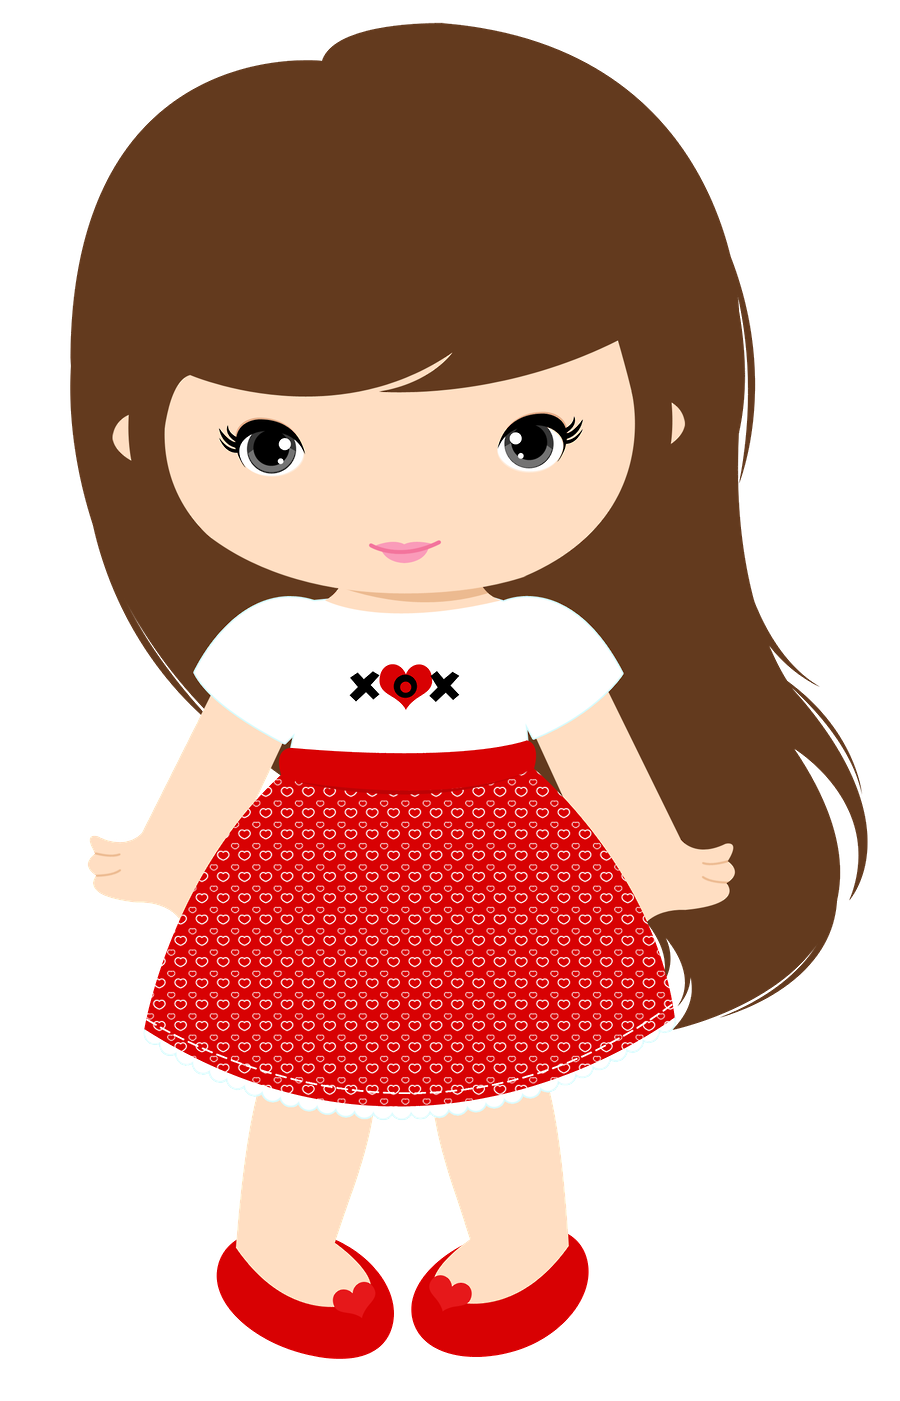 Clipart girl with book to music clip library library http://moniquestrella.minus.com/miGEXi2LL8WQD | Clip art, Dibujos a ... clip library library